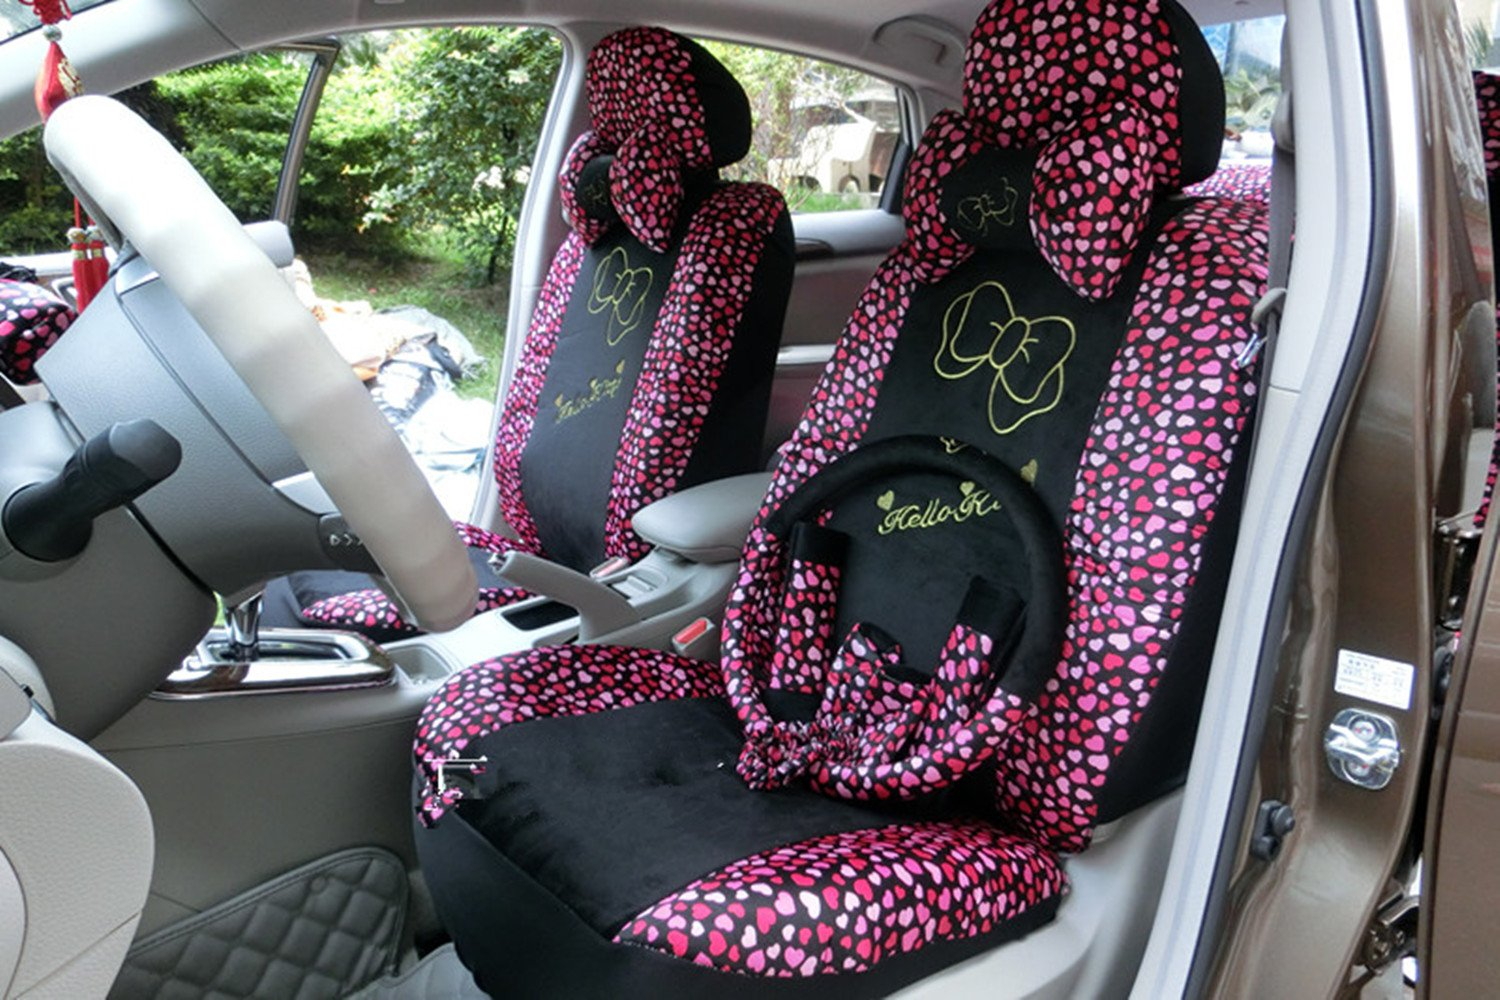 Black/Peach Bow Front Rear Car Seat Cushion Cover Black&Gold 18pcs Full Set Needlework by GH8 (Image #1)